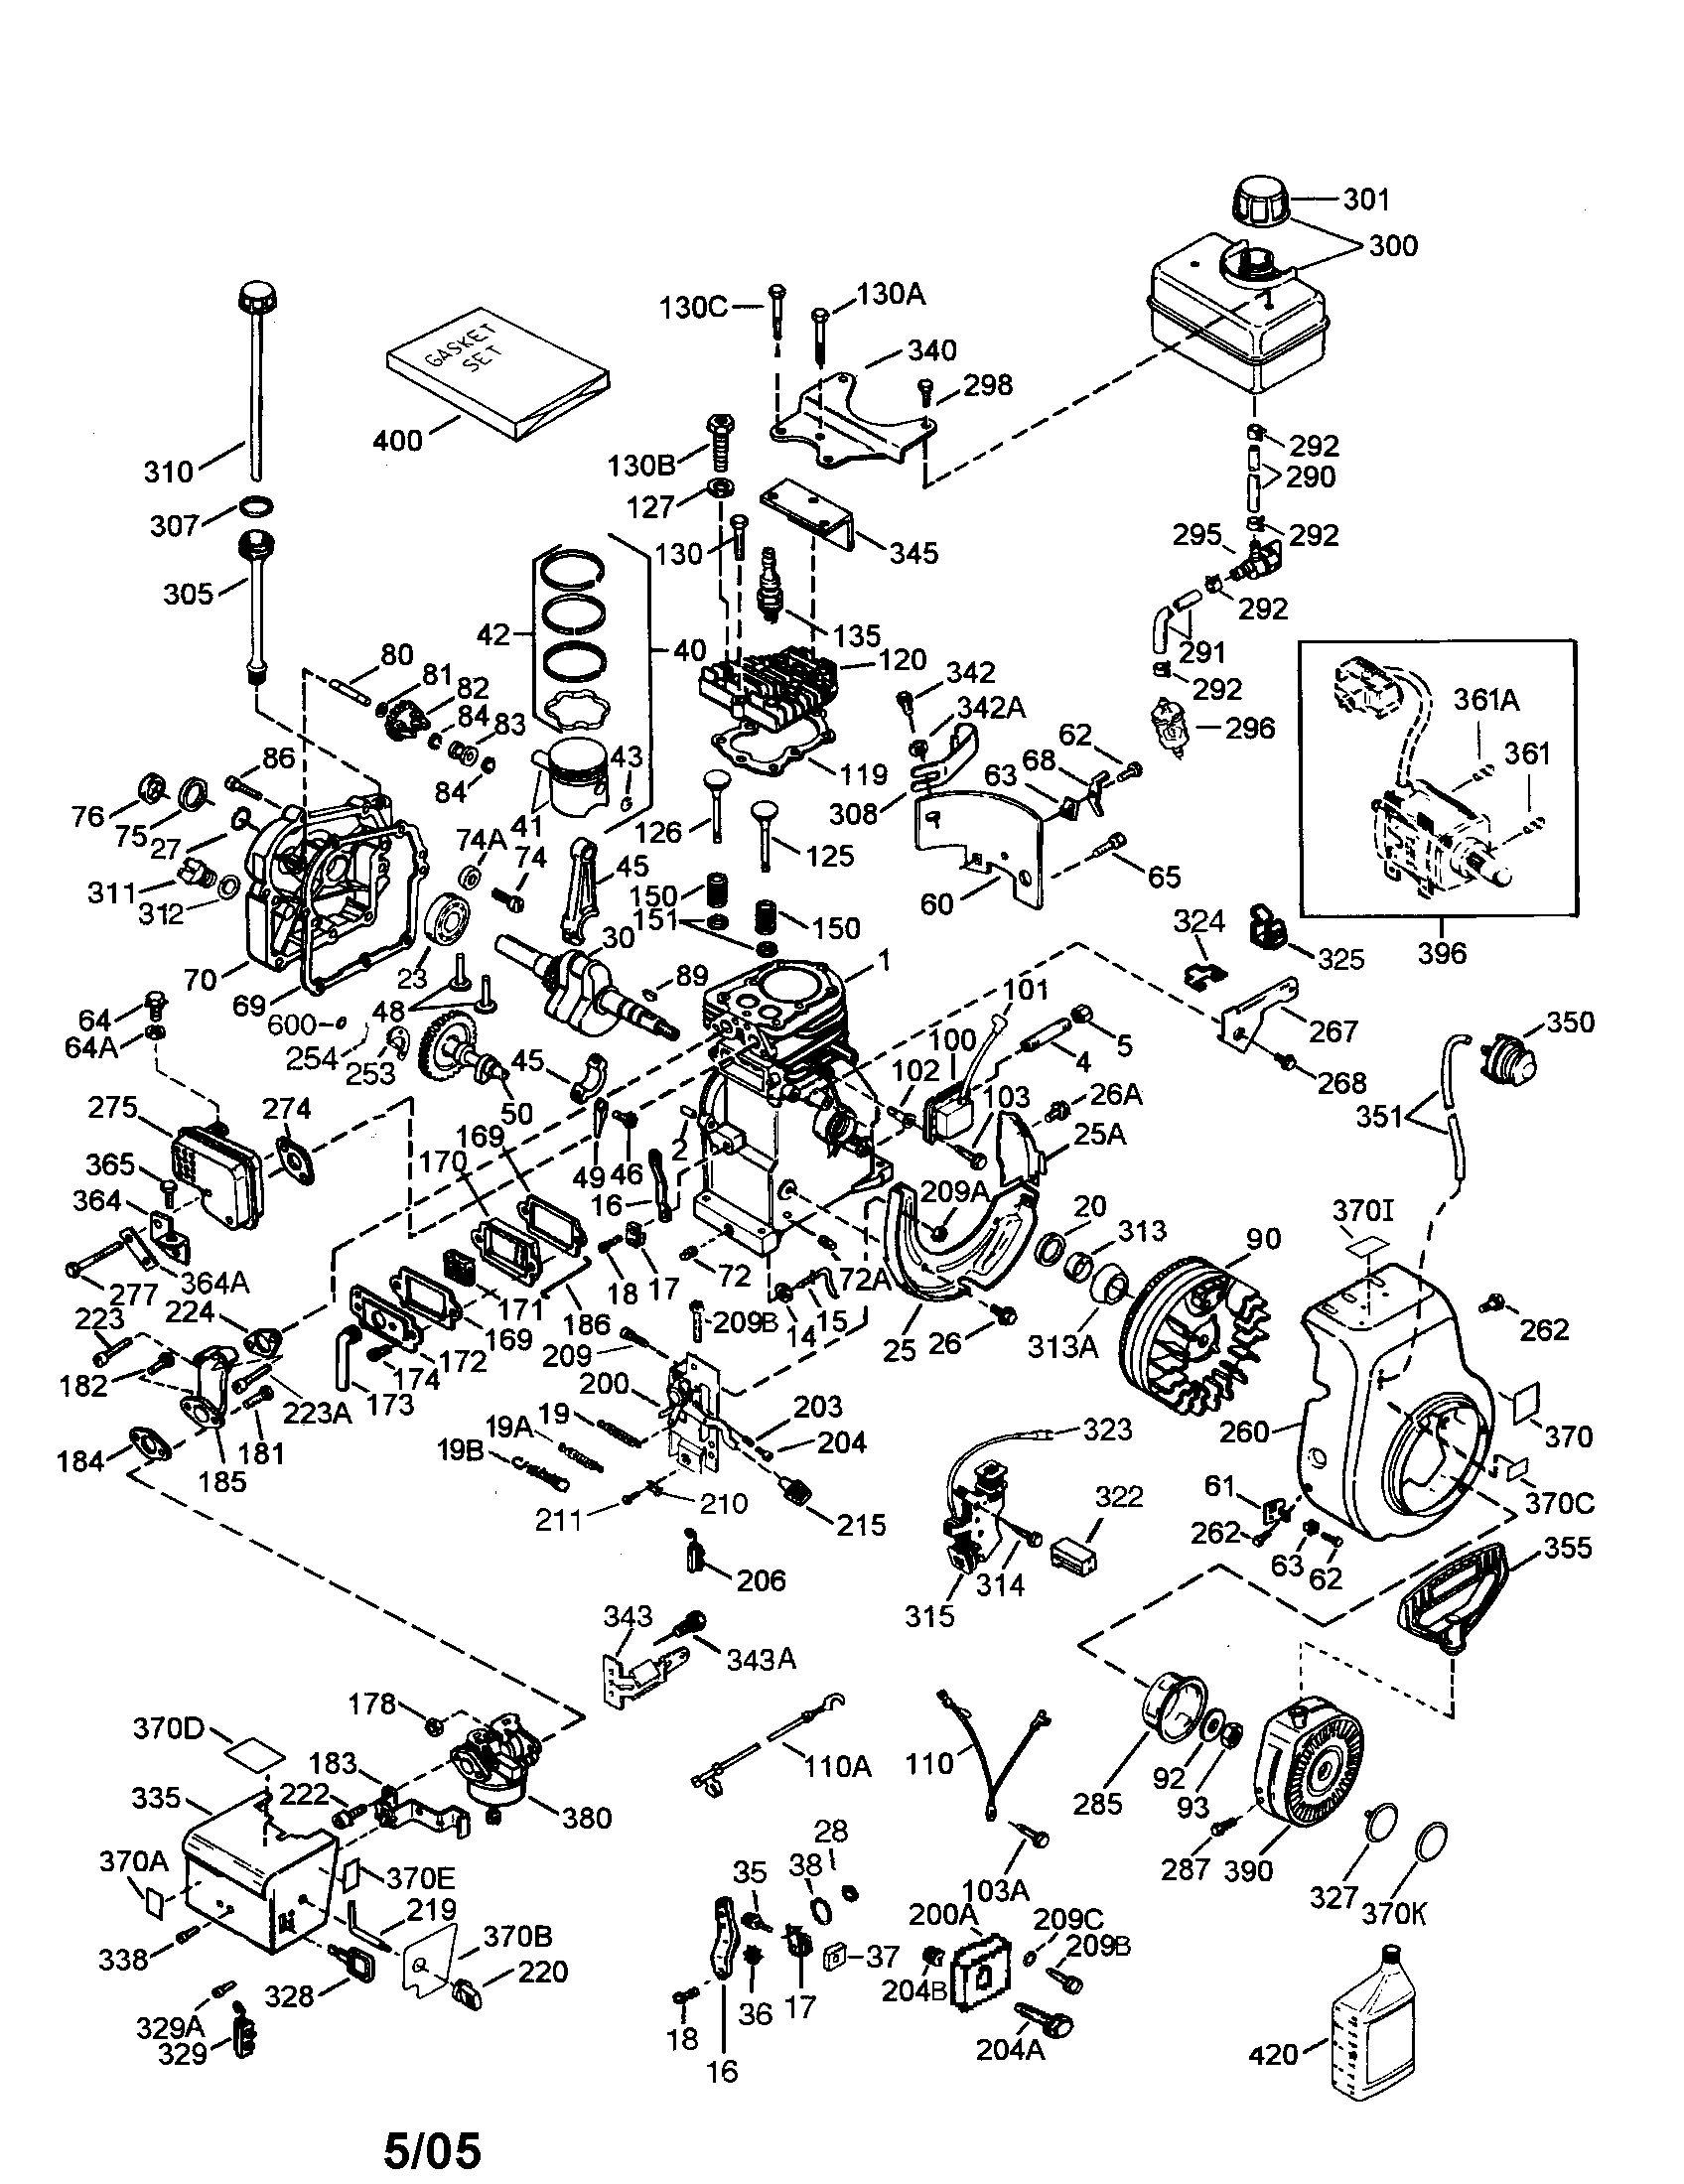 kate gosselin hot: Pic 2 tecumseh engine diagrams